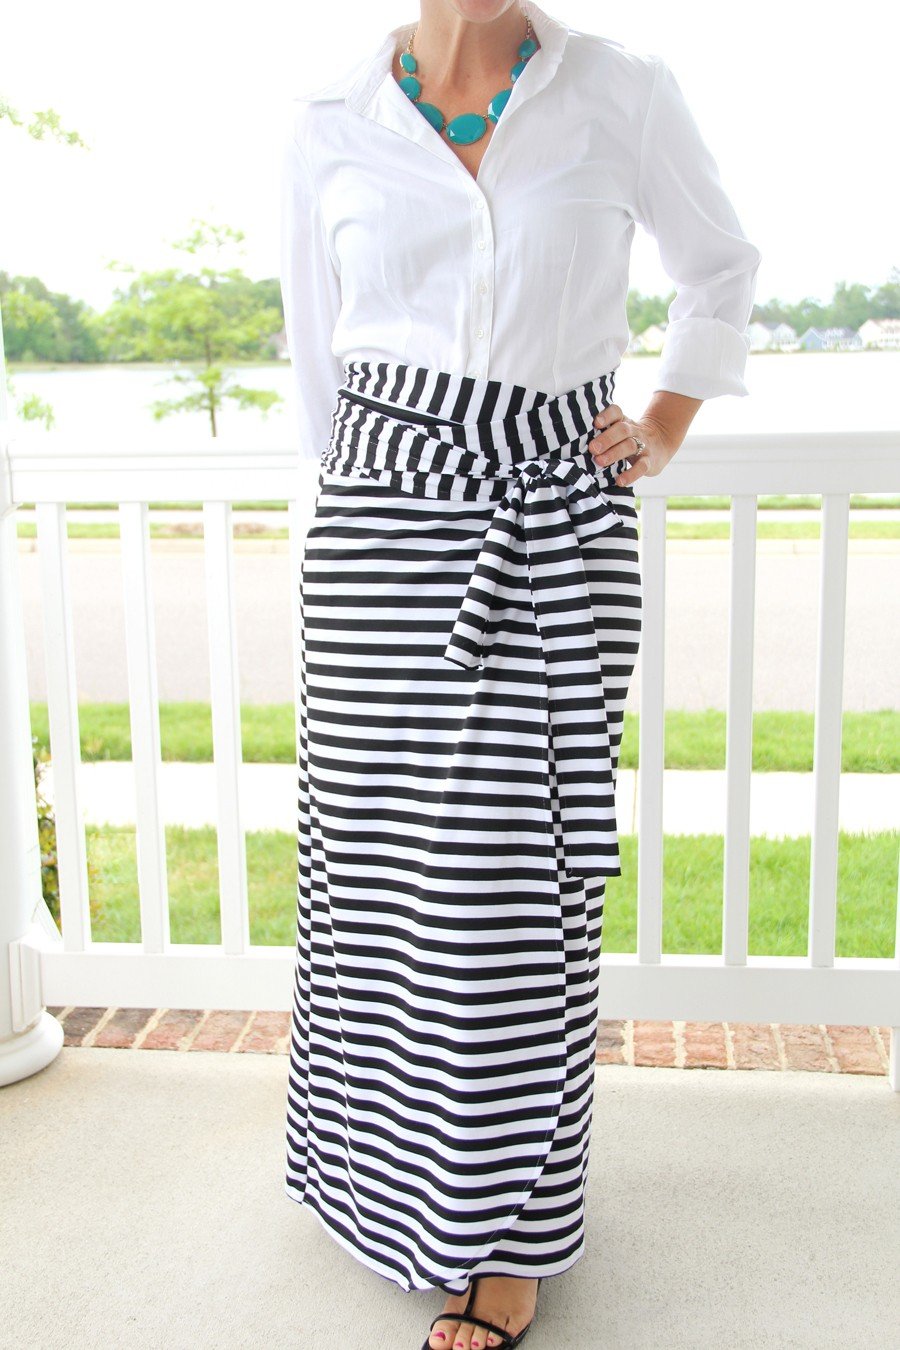 Wrap Maxi Skirt DIY || How to sew an easy women's maxi wrap skirt